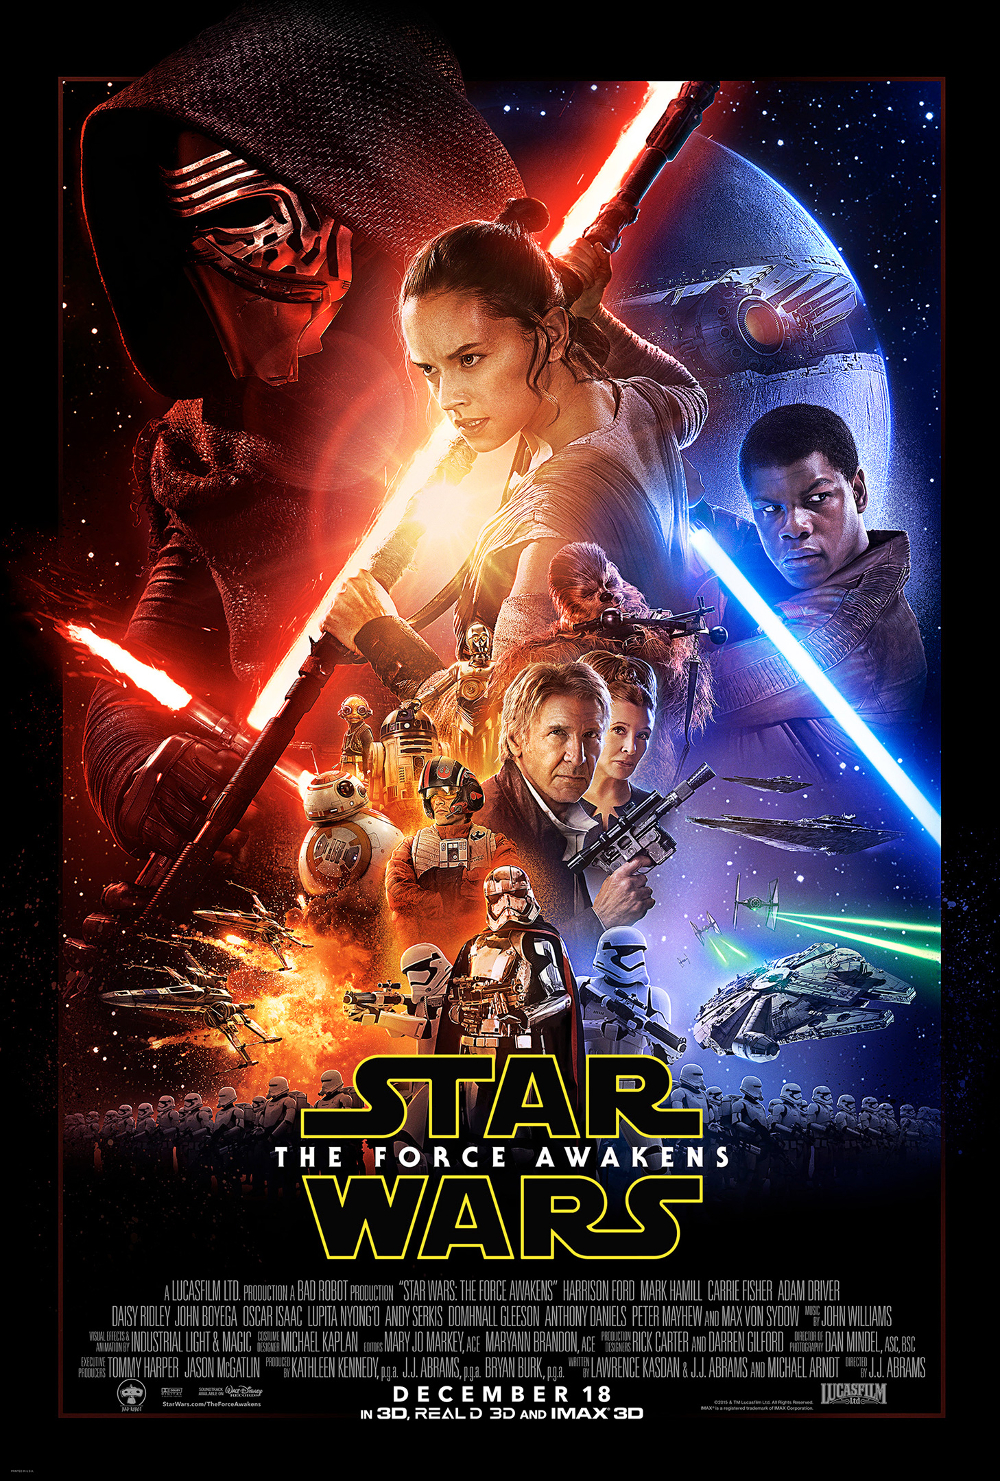 star-wars-episode-vii-the-force-awakens-poster-big